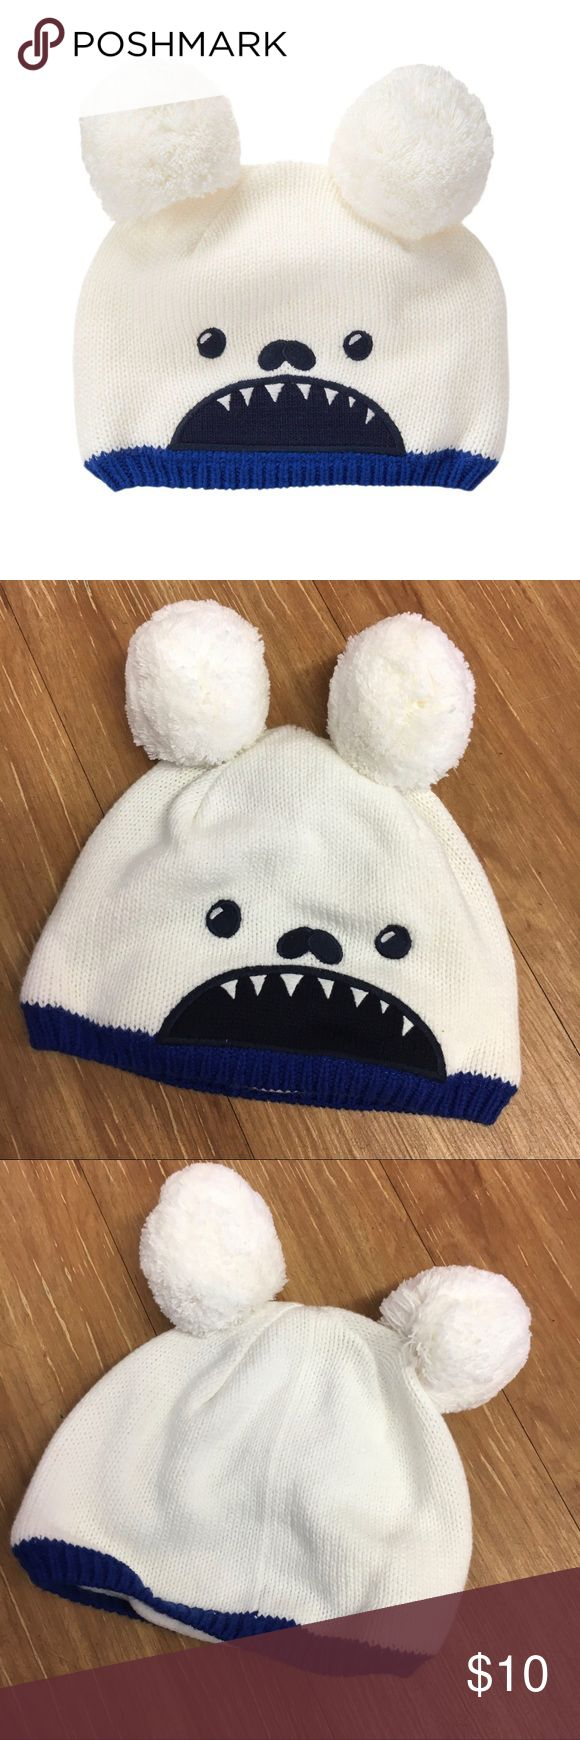 Gymboree Slope Star Yeti Hat 4T 5T White Monster Gymboree Slope Star Yeti Hat 4T 5T White Monster  Super cute hat in great condition.  #beanie #hat #winter #slopestar #yeti #monster #mythical #knit #winteriscoming Gymboree Accessories Hats